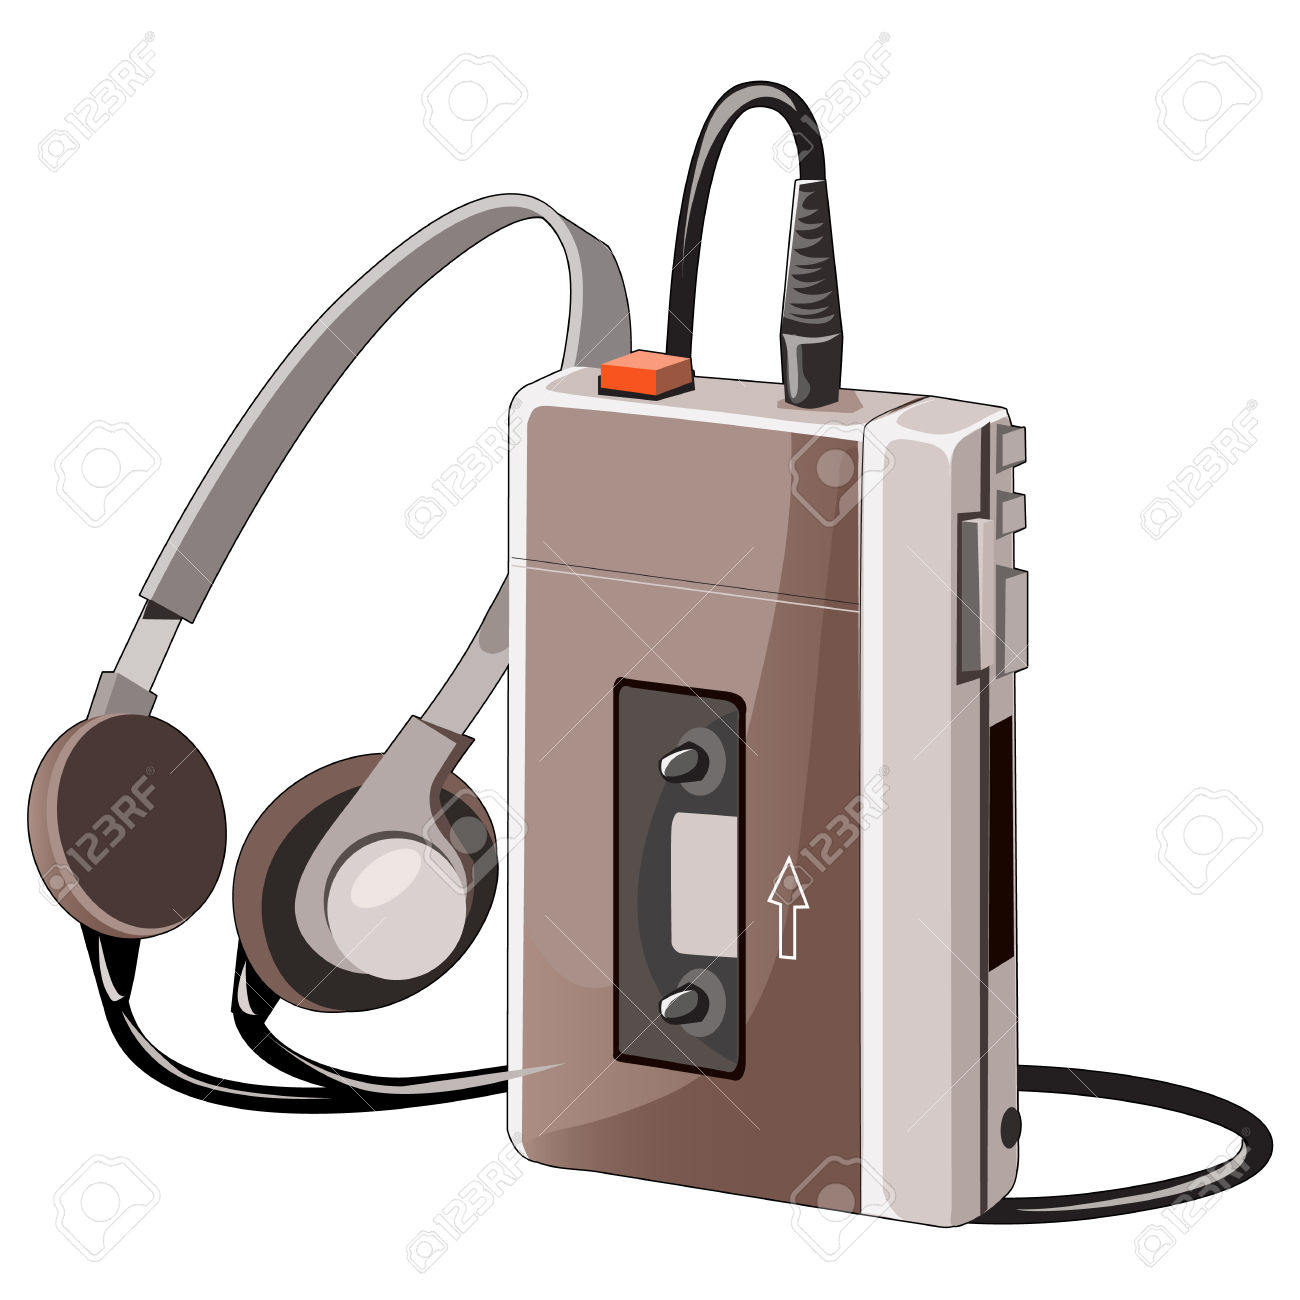 Old Cassette Music Player With Wired Headphones, Vector Isolated.